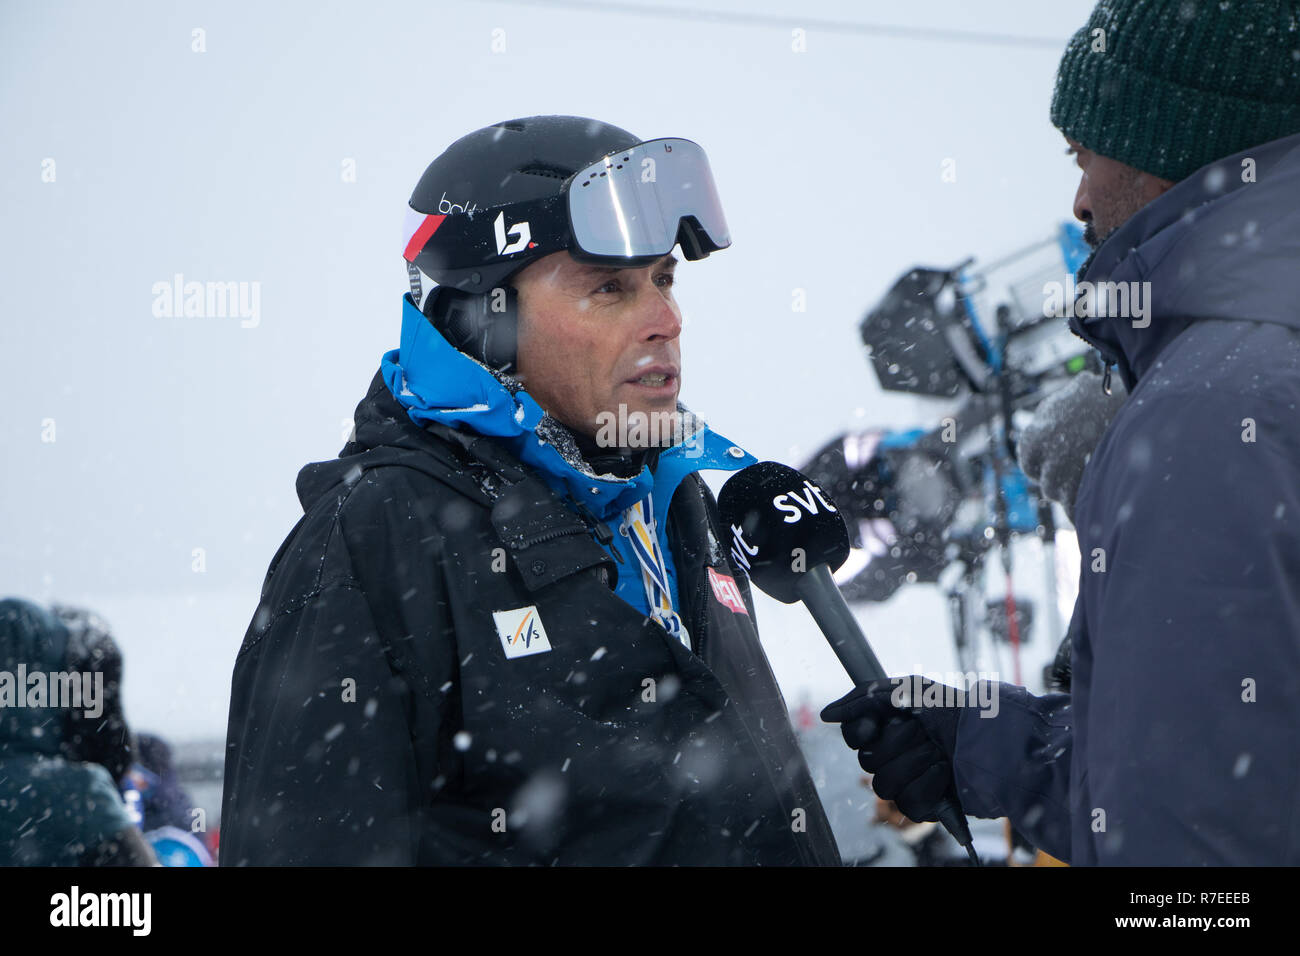 09 December 2018, Val d'Isère France. Markus Waldner of the FIS Alpine Skiing Ski World Cup Federation talks about the cancellation of the slalom race - Stock Image